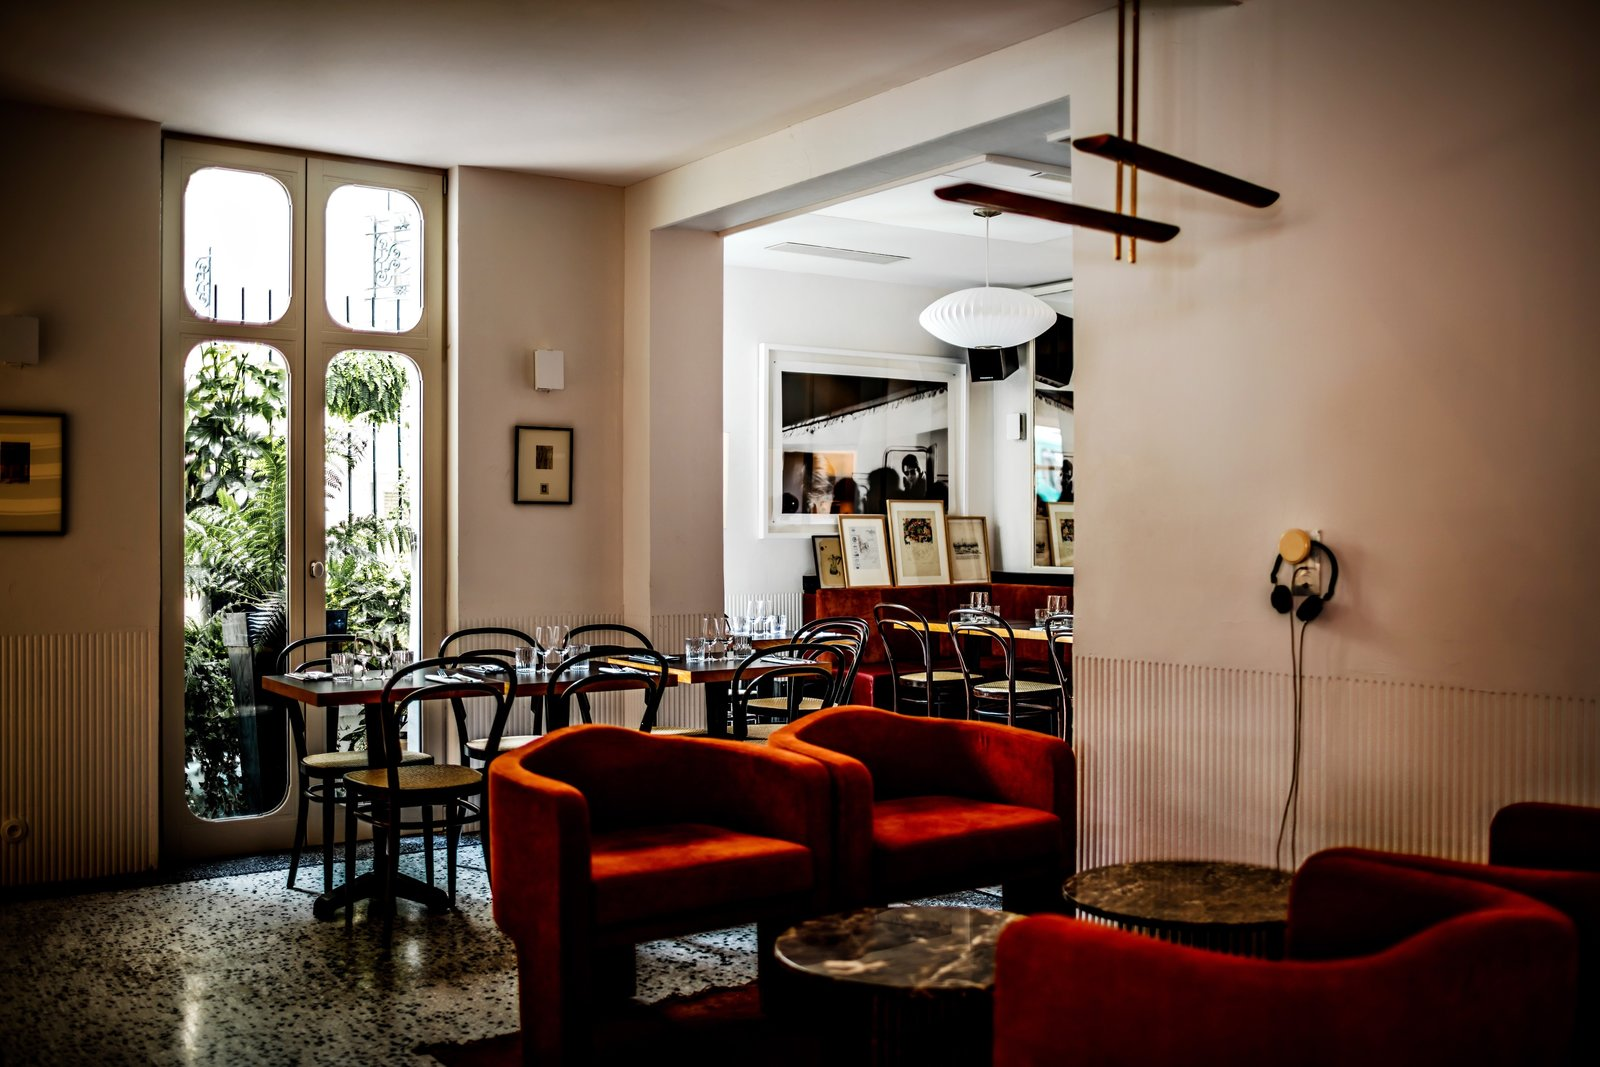 The hotel's restaurant spills into the lobby, promoting the idea that the ground floor functions more as a whole and less as individual spaces.  Photo 7 of 8 in Collaboration Reigns  Over This Parisian Neighborhood Hotel